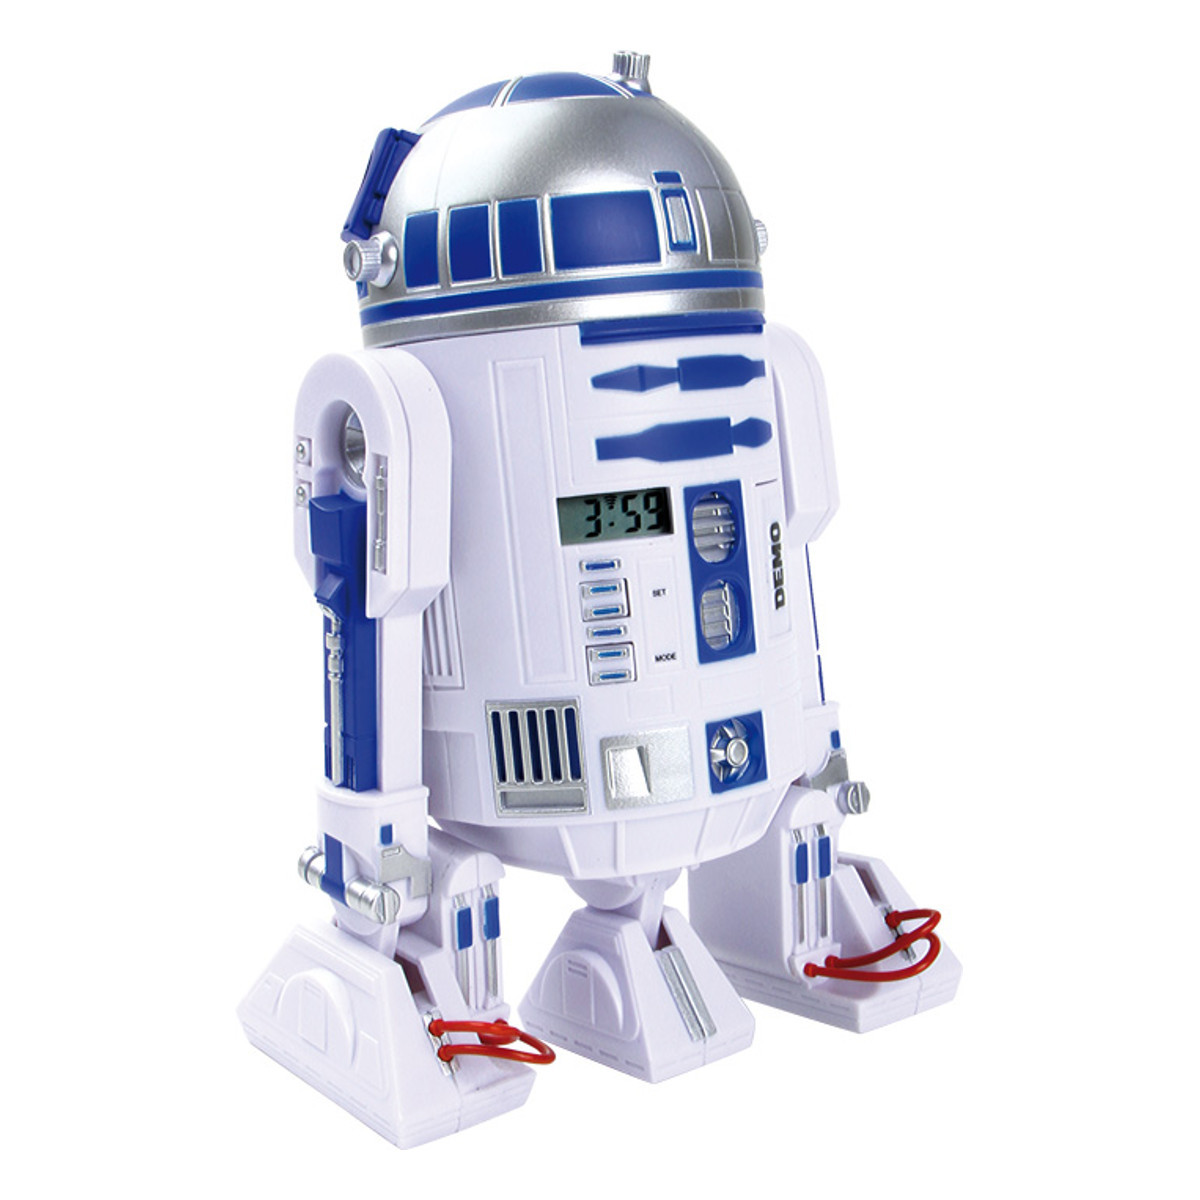 Star Wars: Despertador R2D2